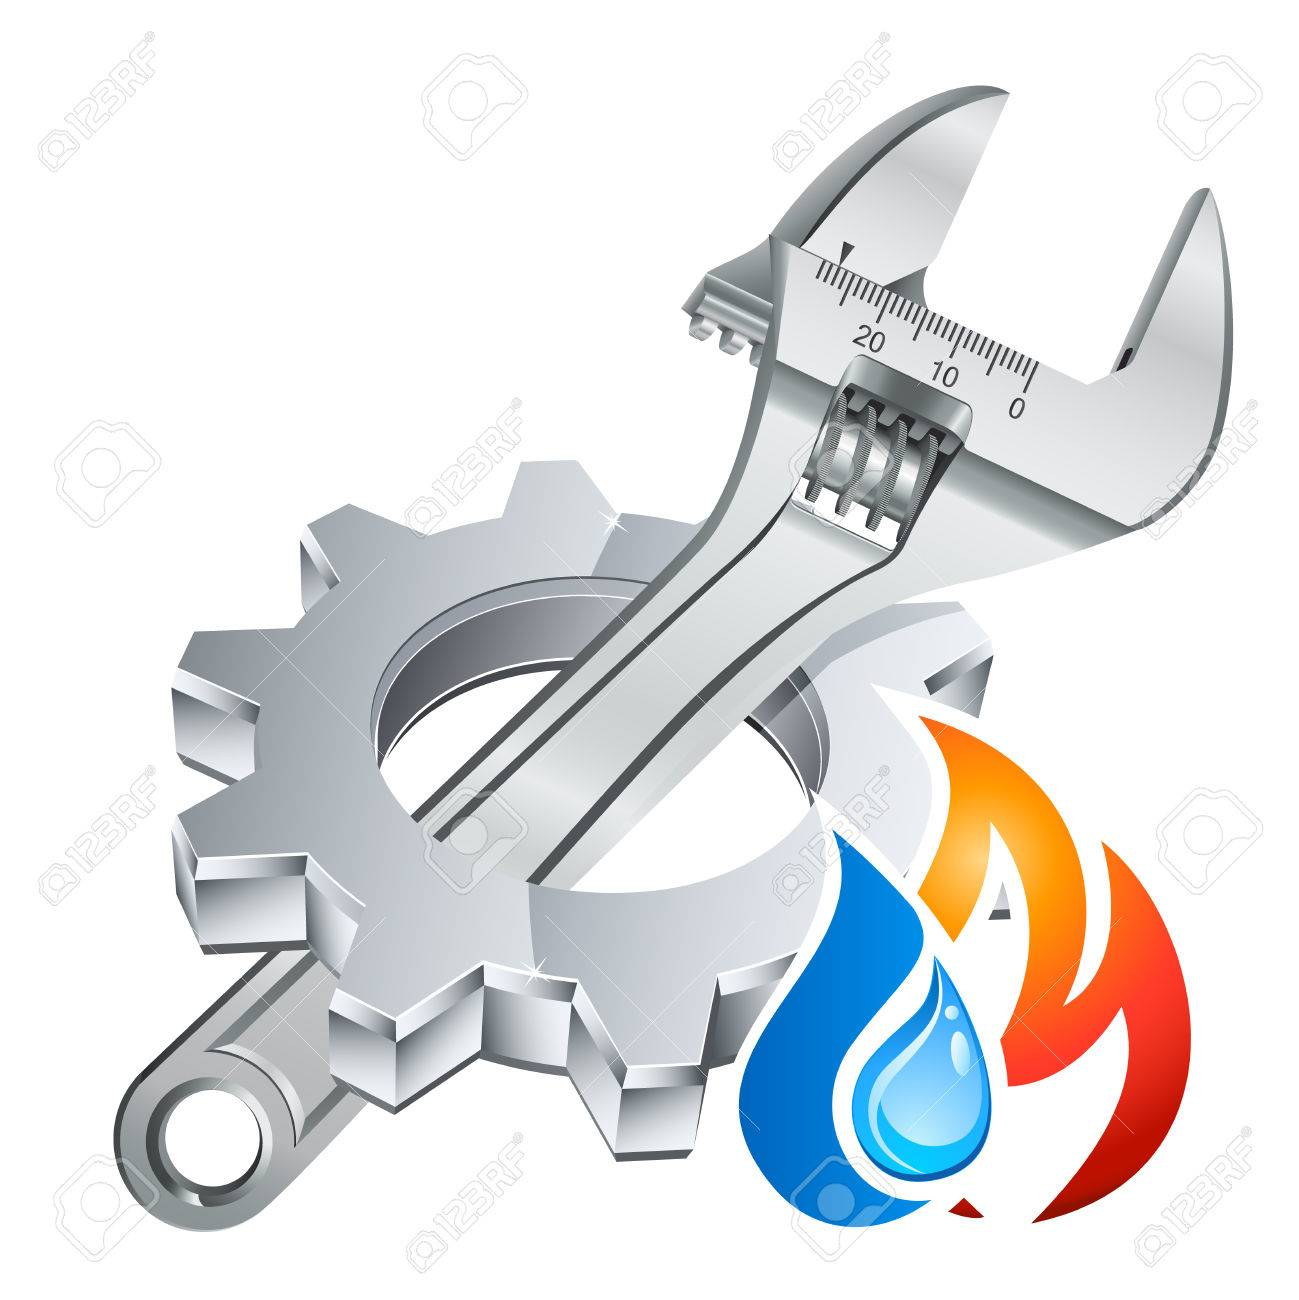 plumber icon with gear, adjustable wrench and fire/water symbol - 56921422